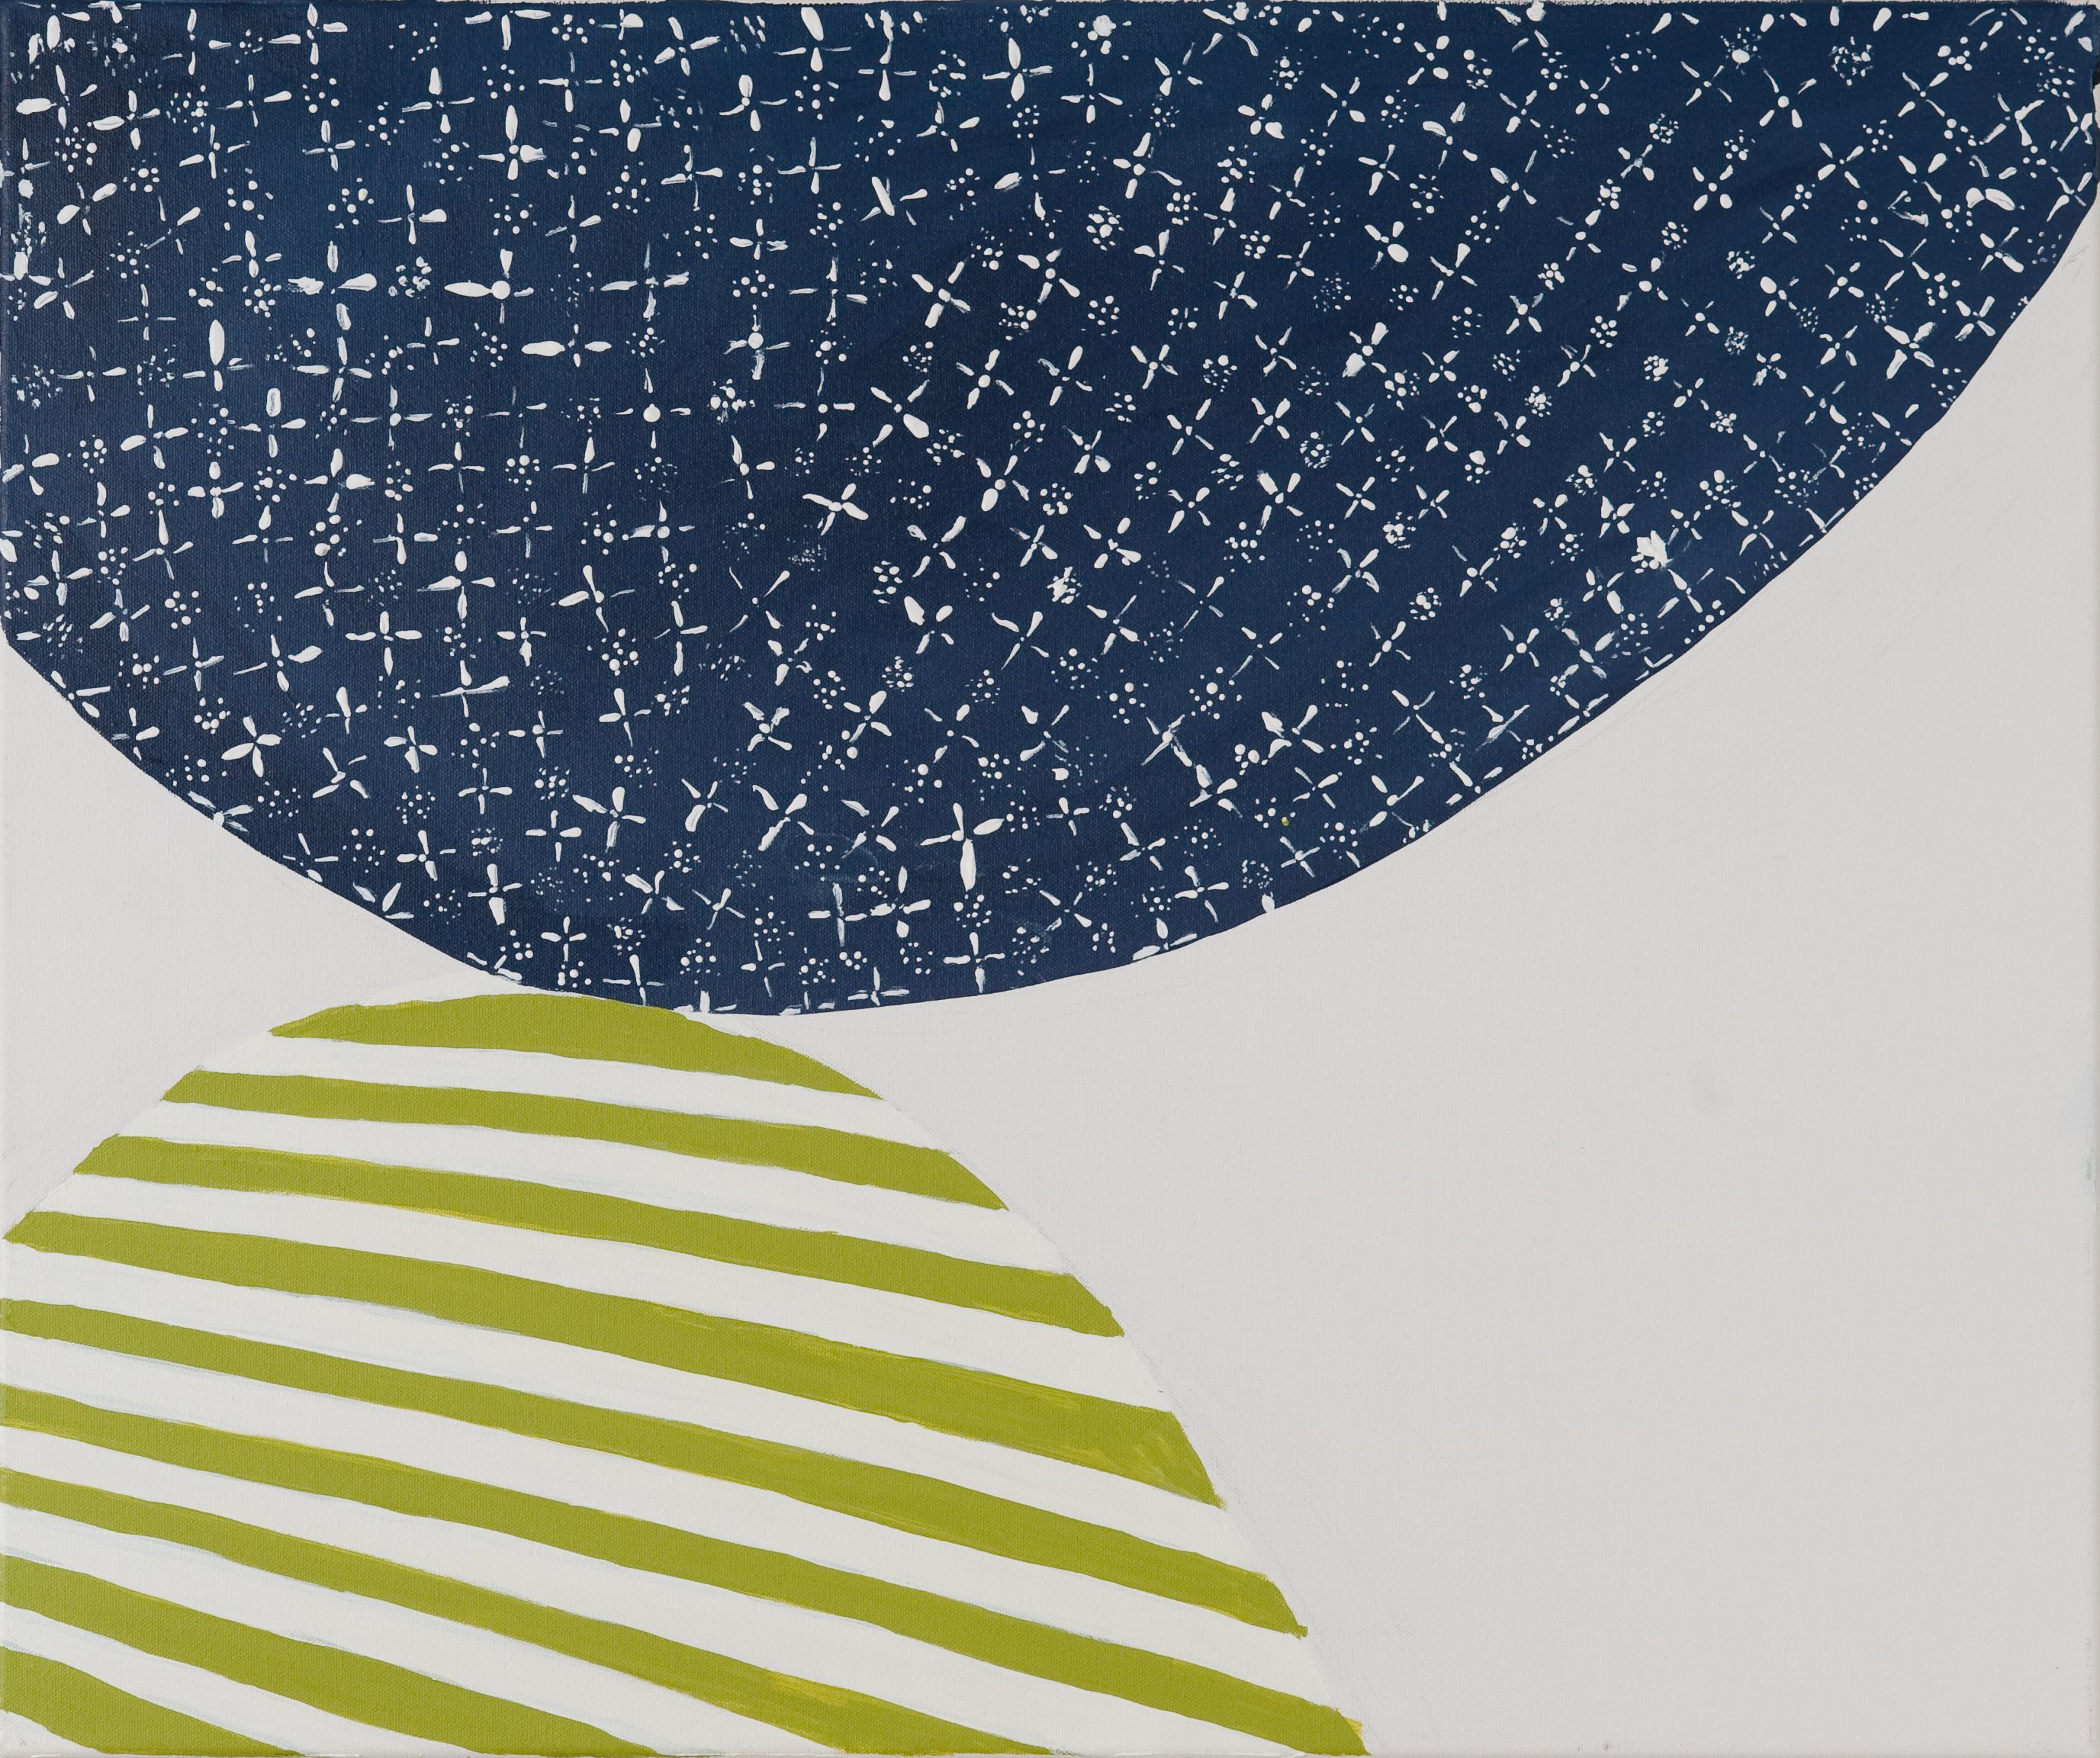 Perry Meigs, Untitled 2 (Spring 2011), 2013, Acrylic on canvas, 18 x 24 in., Courtesy the artist